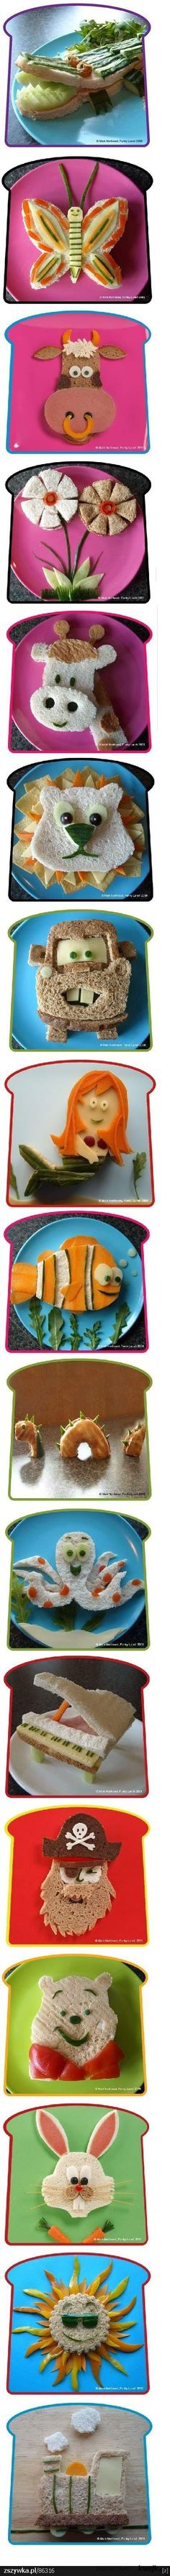 """How cute are these kiddo sandwiches! Do you make """"food art"""" for your kids? Cut their sandwiches in cute shapes? How do you make mealtime fun? Cute Food, Good Food, Yummy Food, Toddler Meals, Kids Meals, Toddler Food, Boite A Lunch, Food Humor, Kid Friendly Meals"""